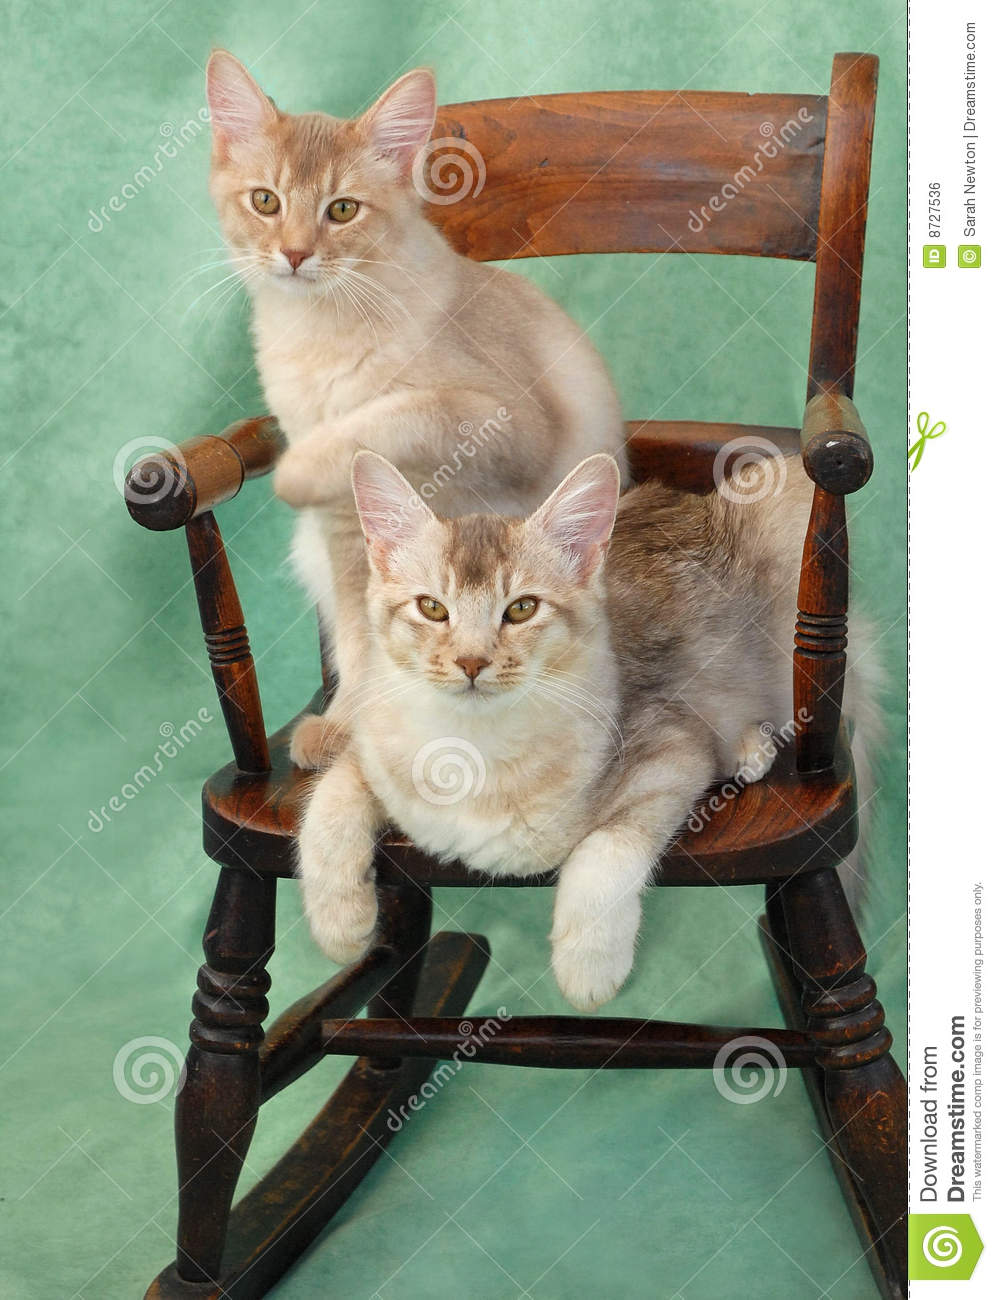 Cats on rocking chair stock photo Image of feline